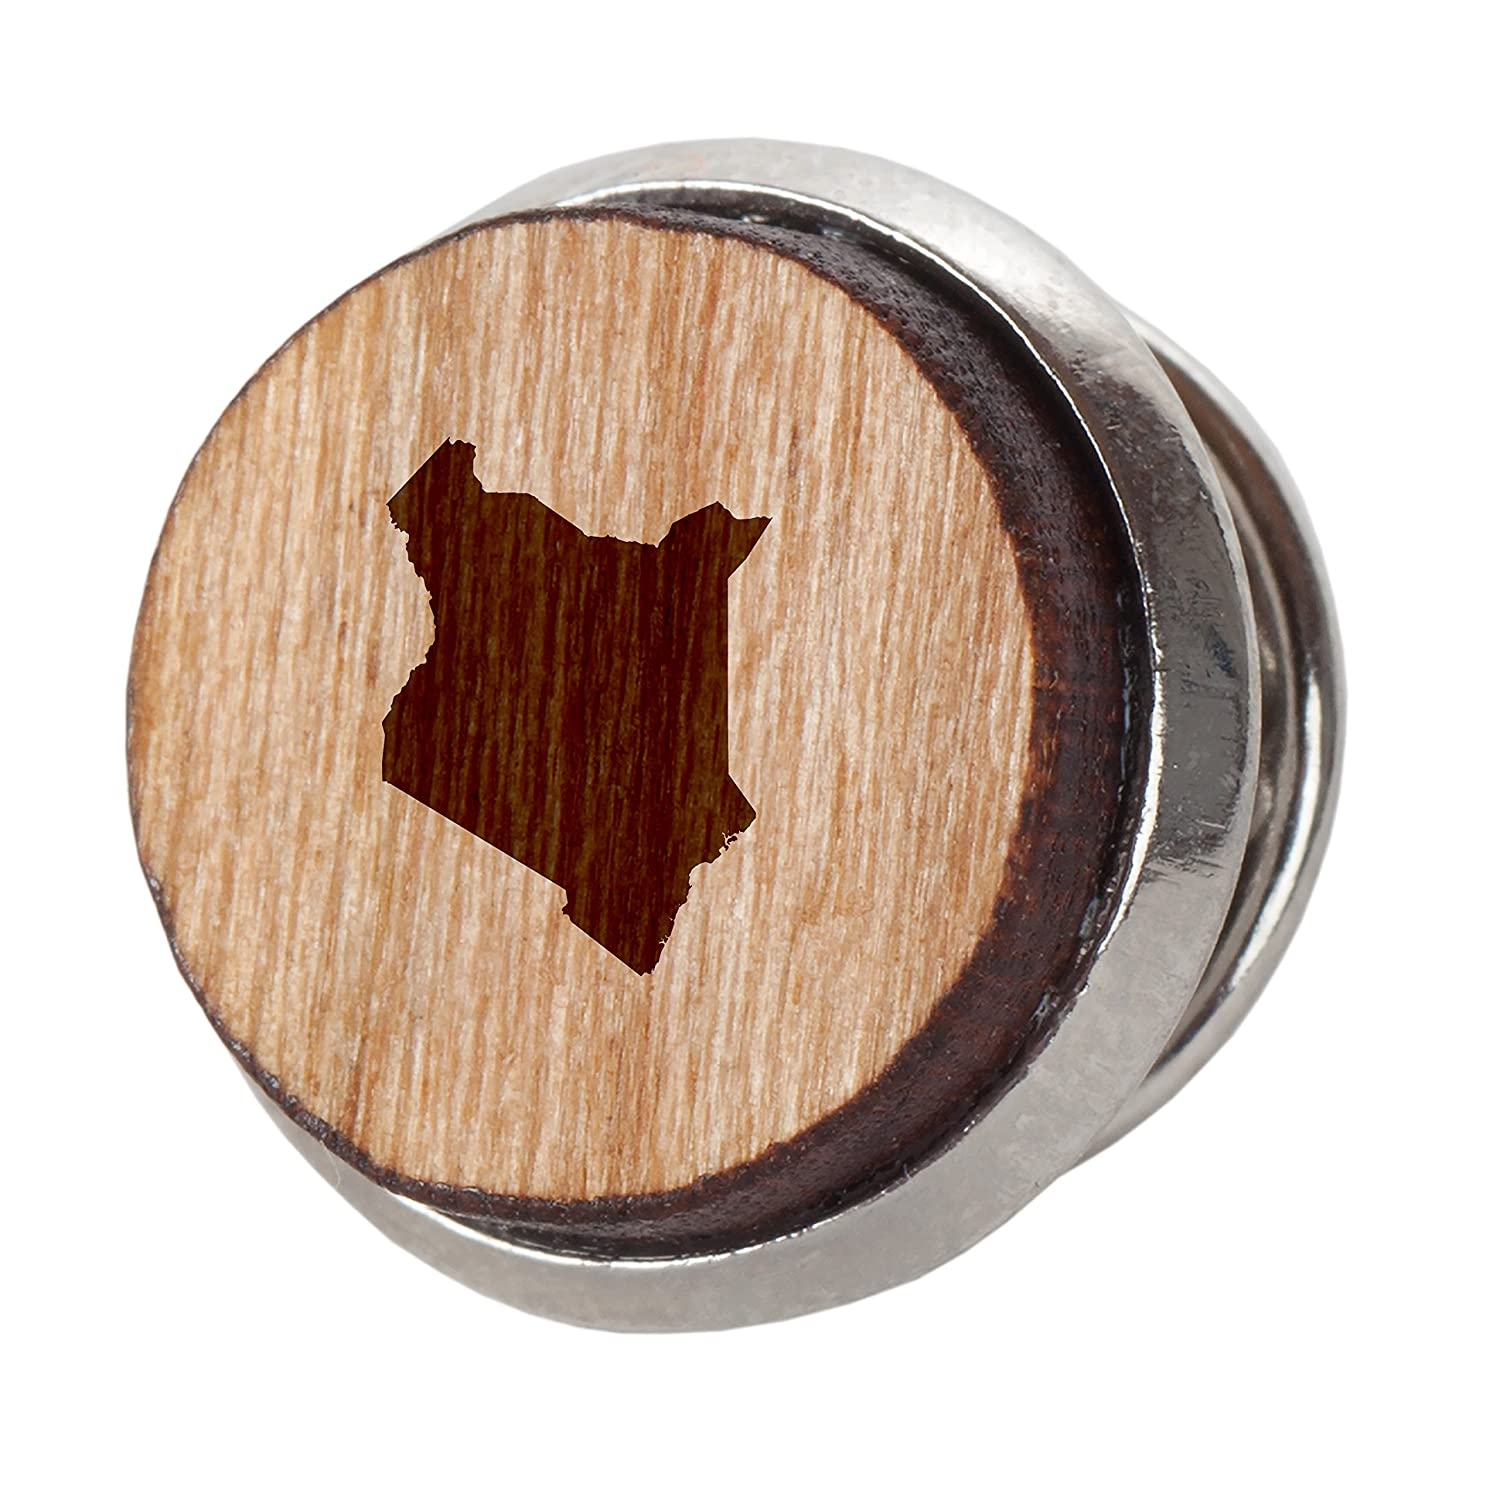 Kenya Stylish Cherry Wood Tie Tack 12Mm Simple Tie Clip with Laser Engraved Design Engraved Tie Tack Gift